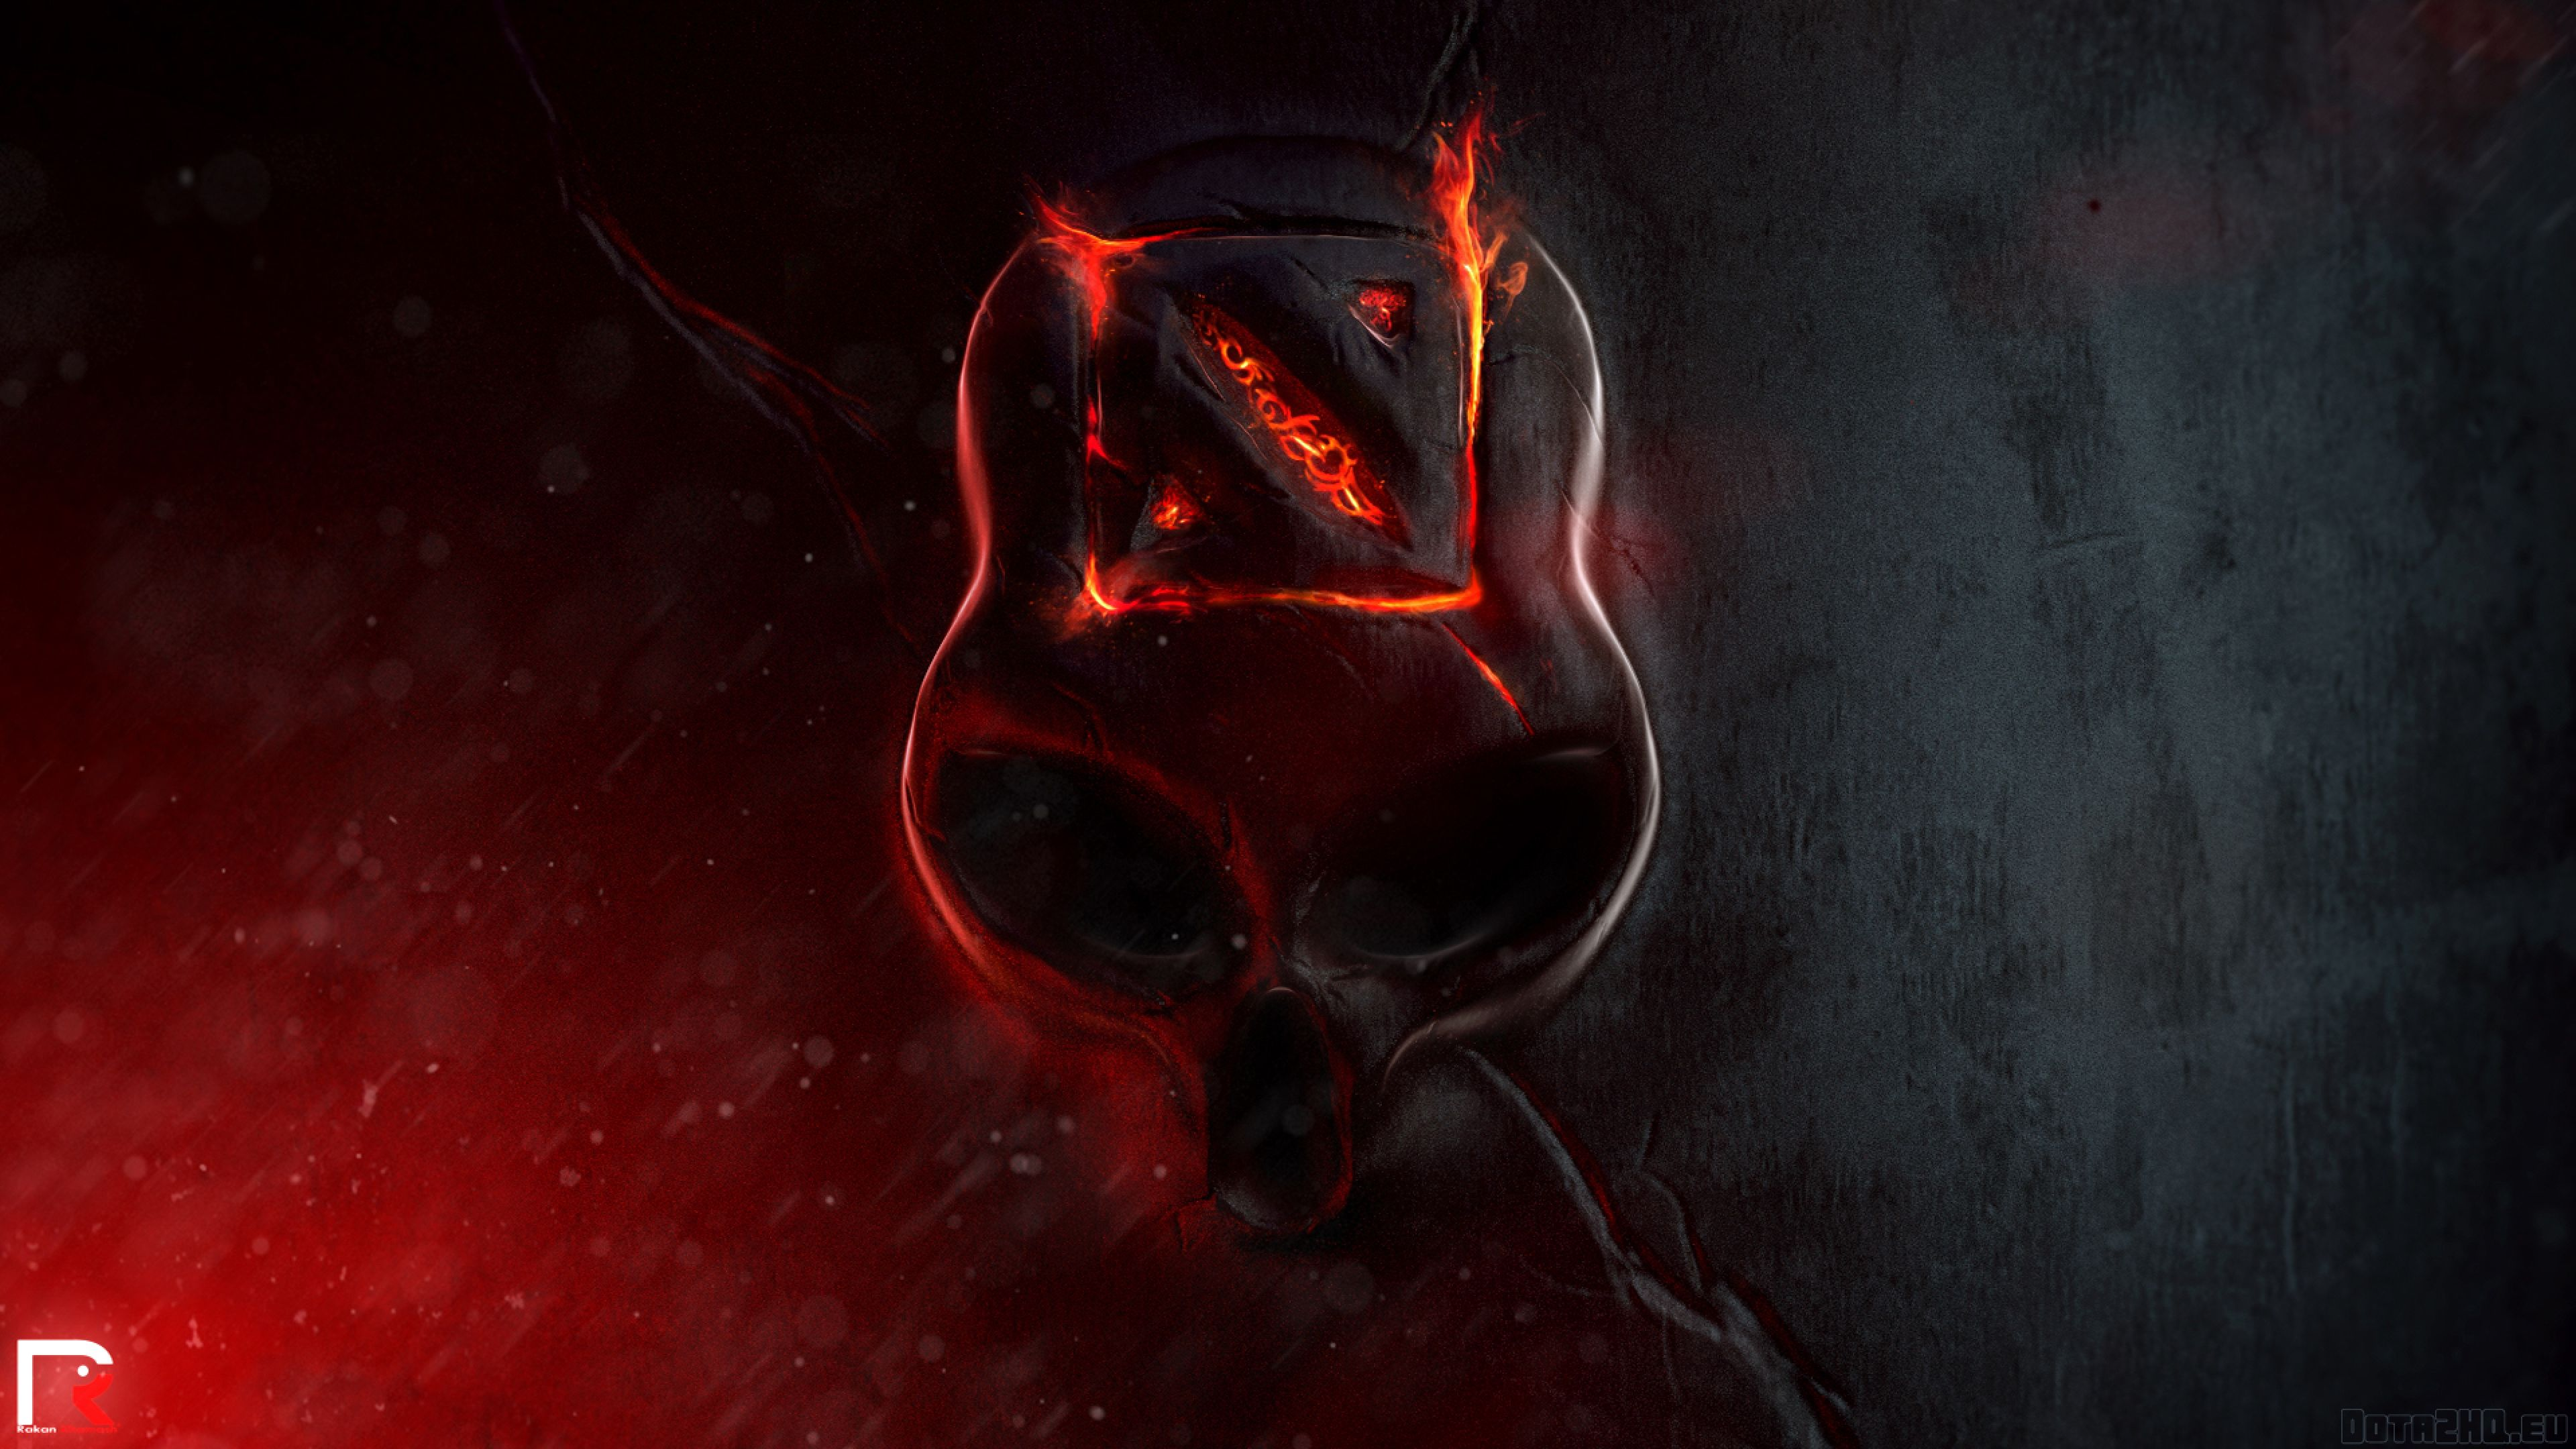 Download Wallpaper 3840x2160 Dota 2, Skull, Fire, Logo 4K ...